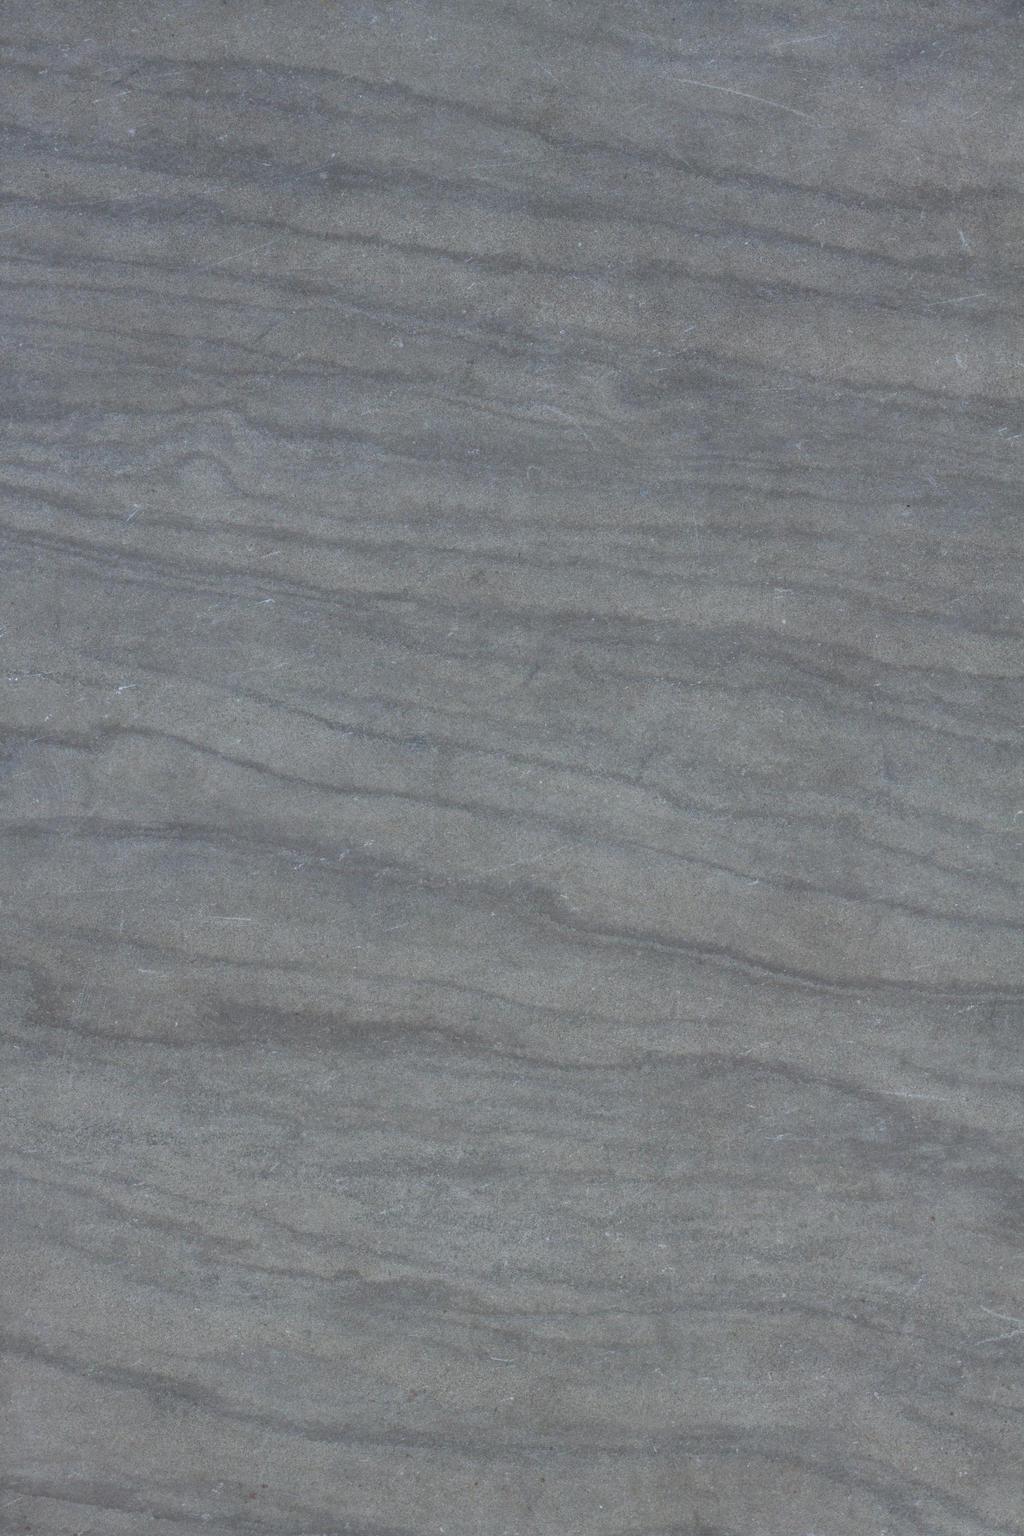 Grey Stone texture-1 by hhh316 on DeviantArt